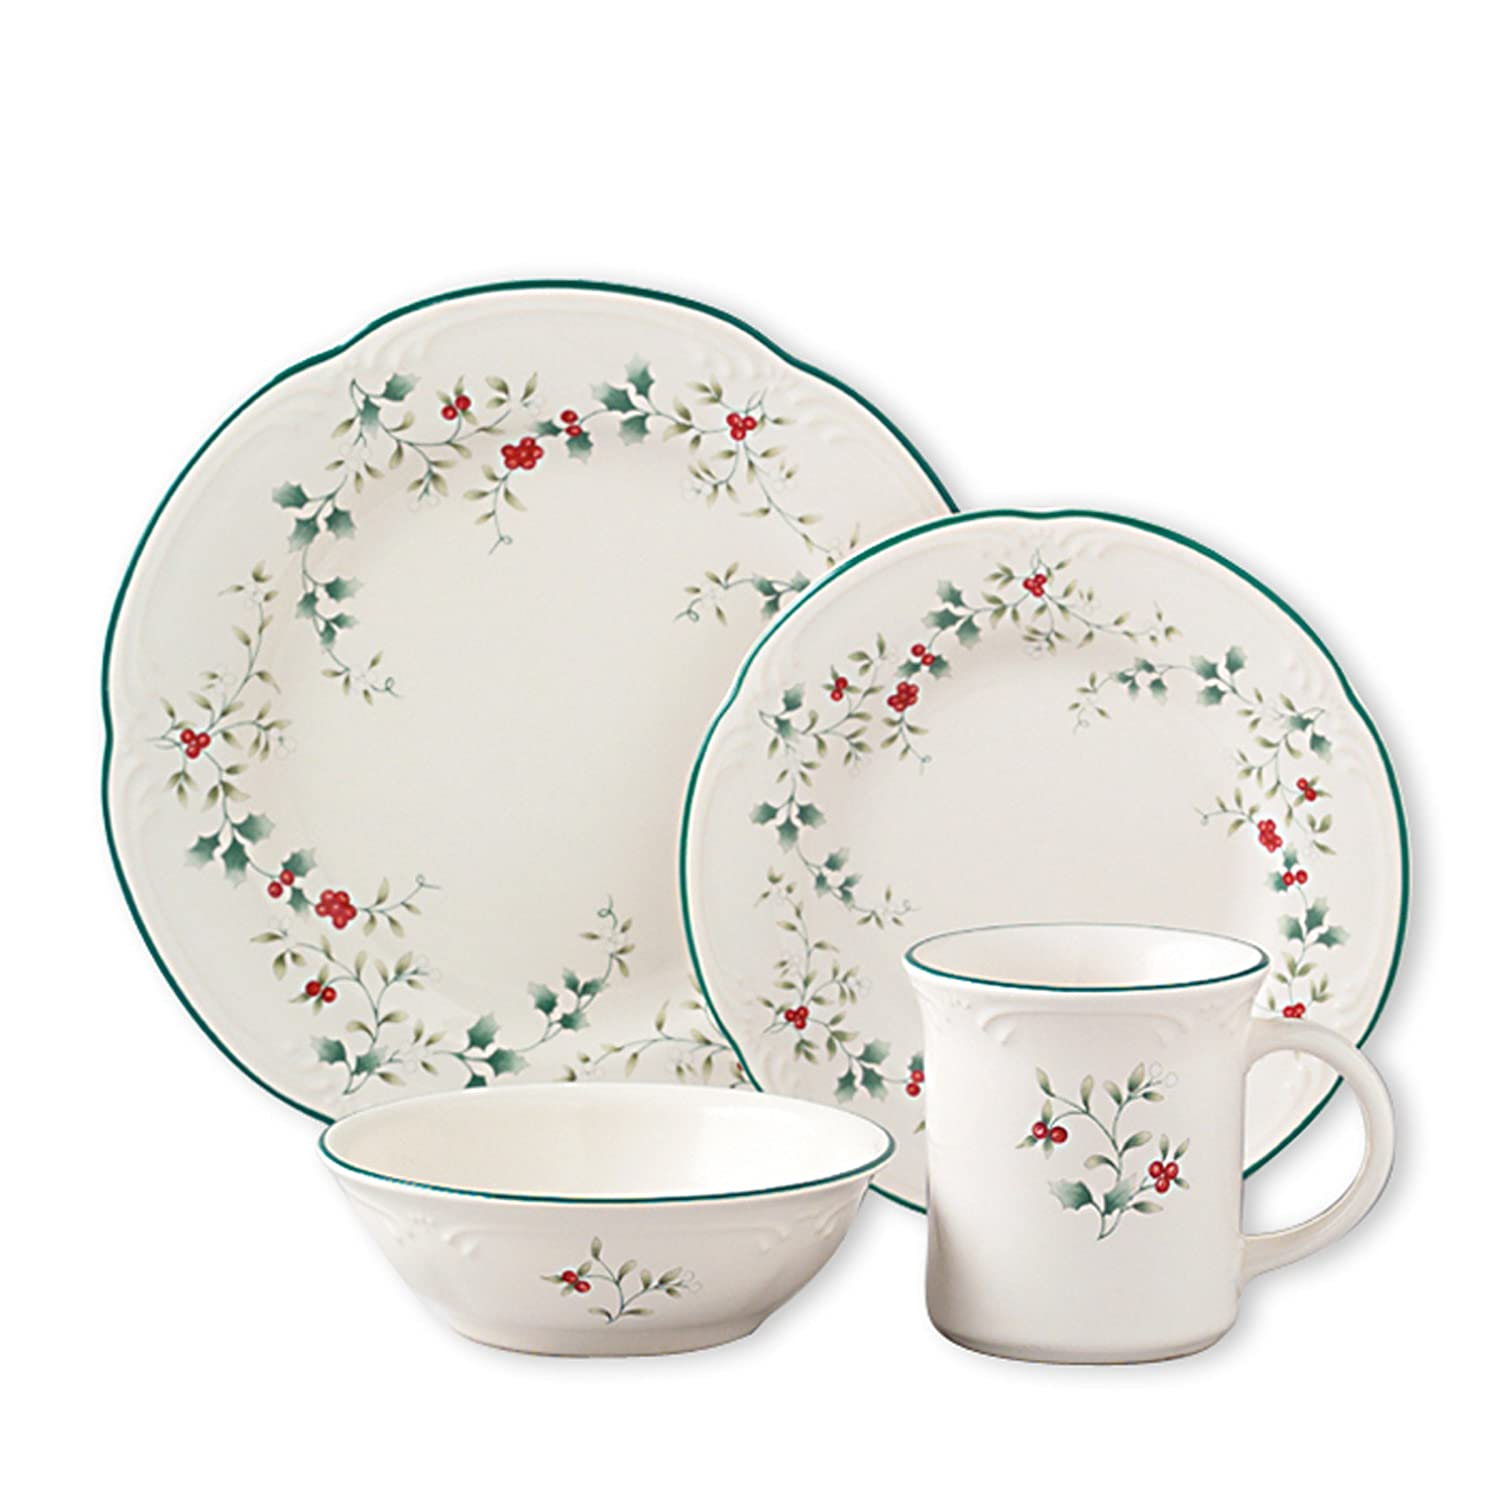 Amazon.com | Pfaltzgraff Winterberry 16-Piece Dinnerware Set Service for 4 Pfaltzgraff Christmas Winterberry Dishes Dinnerware Sets  sc 1 st  Amazon.com & Amazon.com | Pfaltzgraff Winterberry 16-Piece Dinnerware Set ...